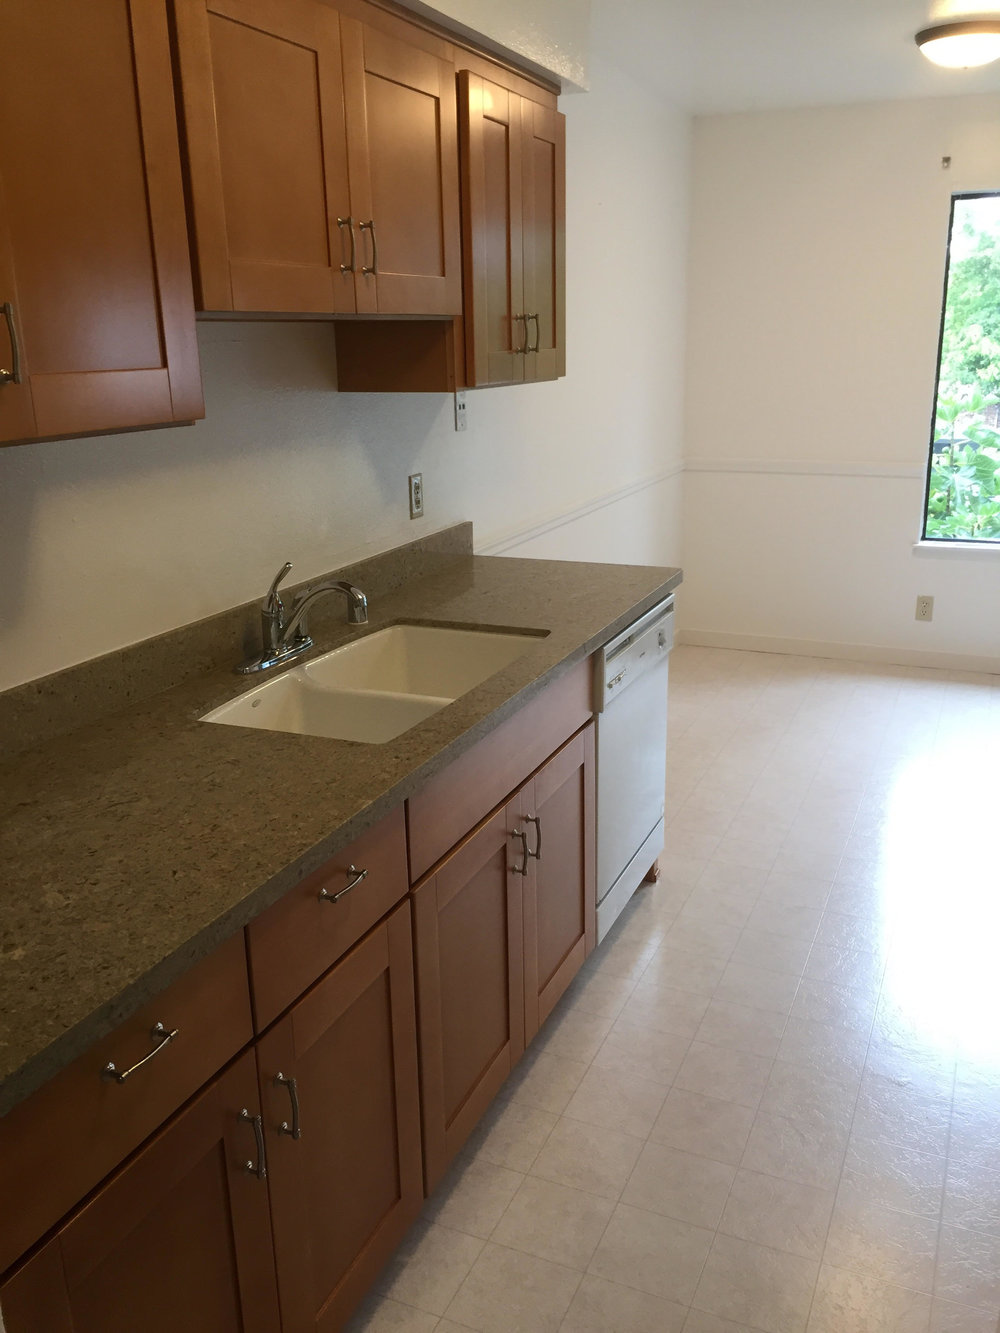 1925 46th Ave. #96 - New Quartz Counter tops. New Maple Cabinets. Beautiful Remodel, Move-In Ready!